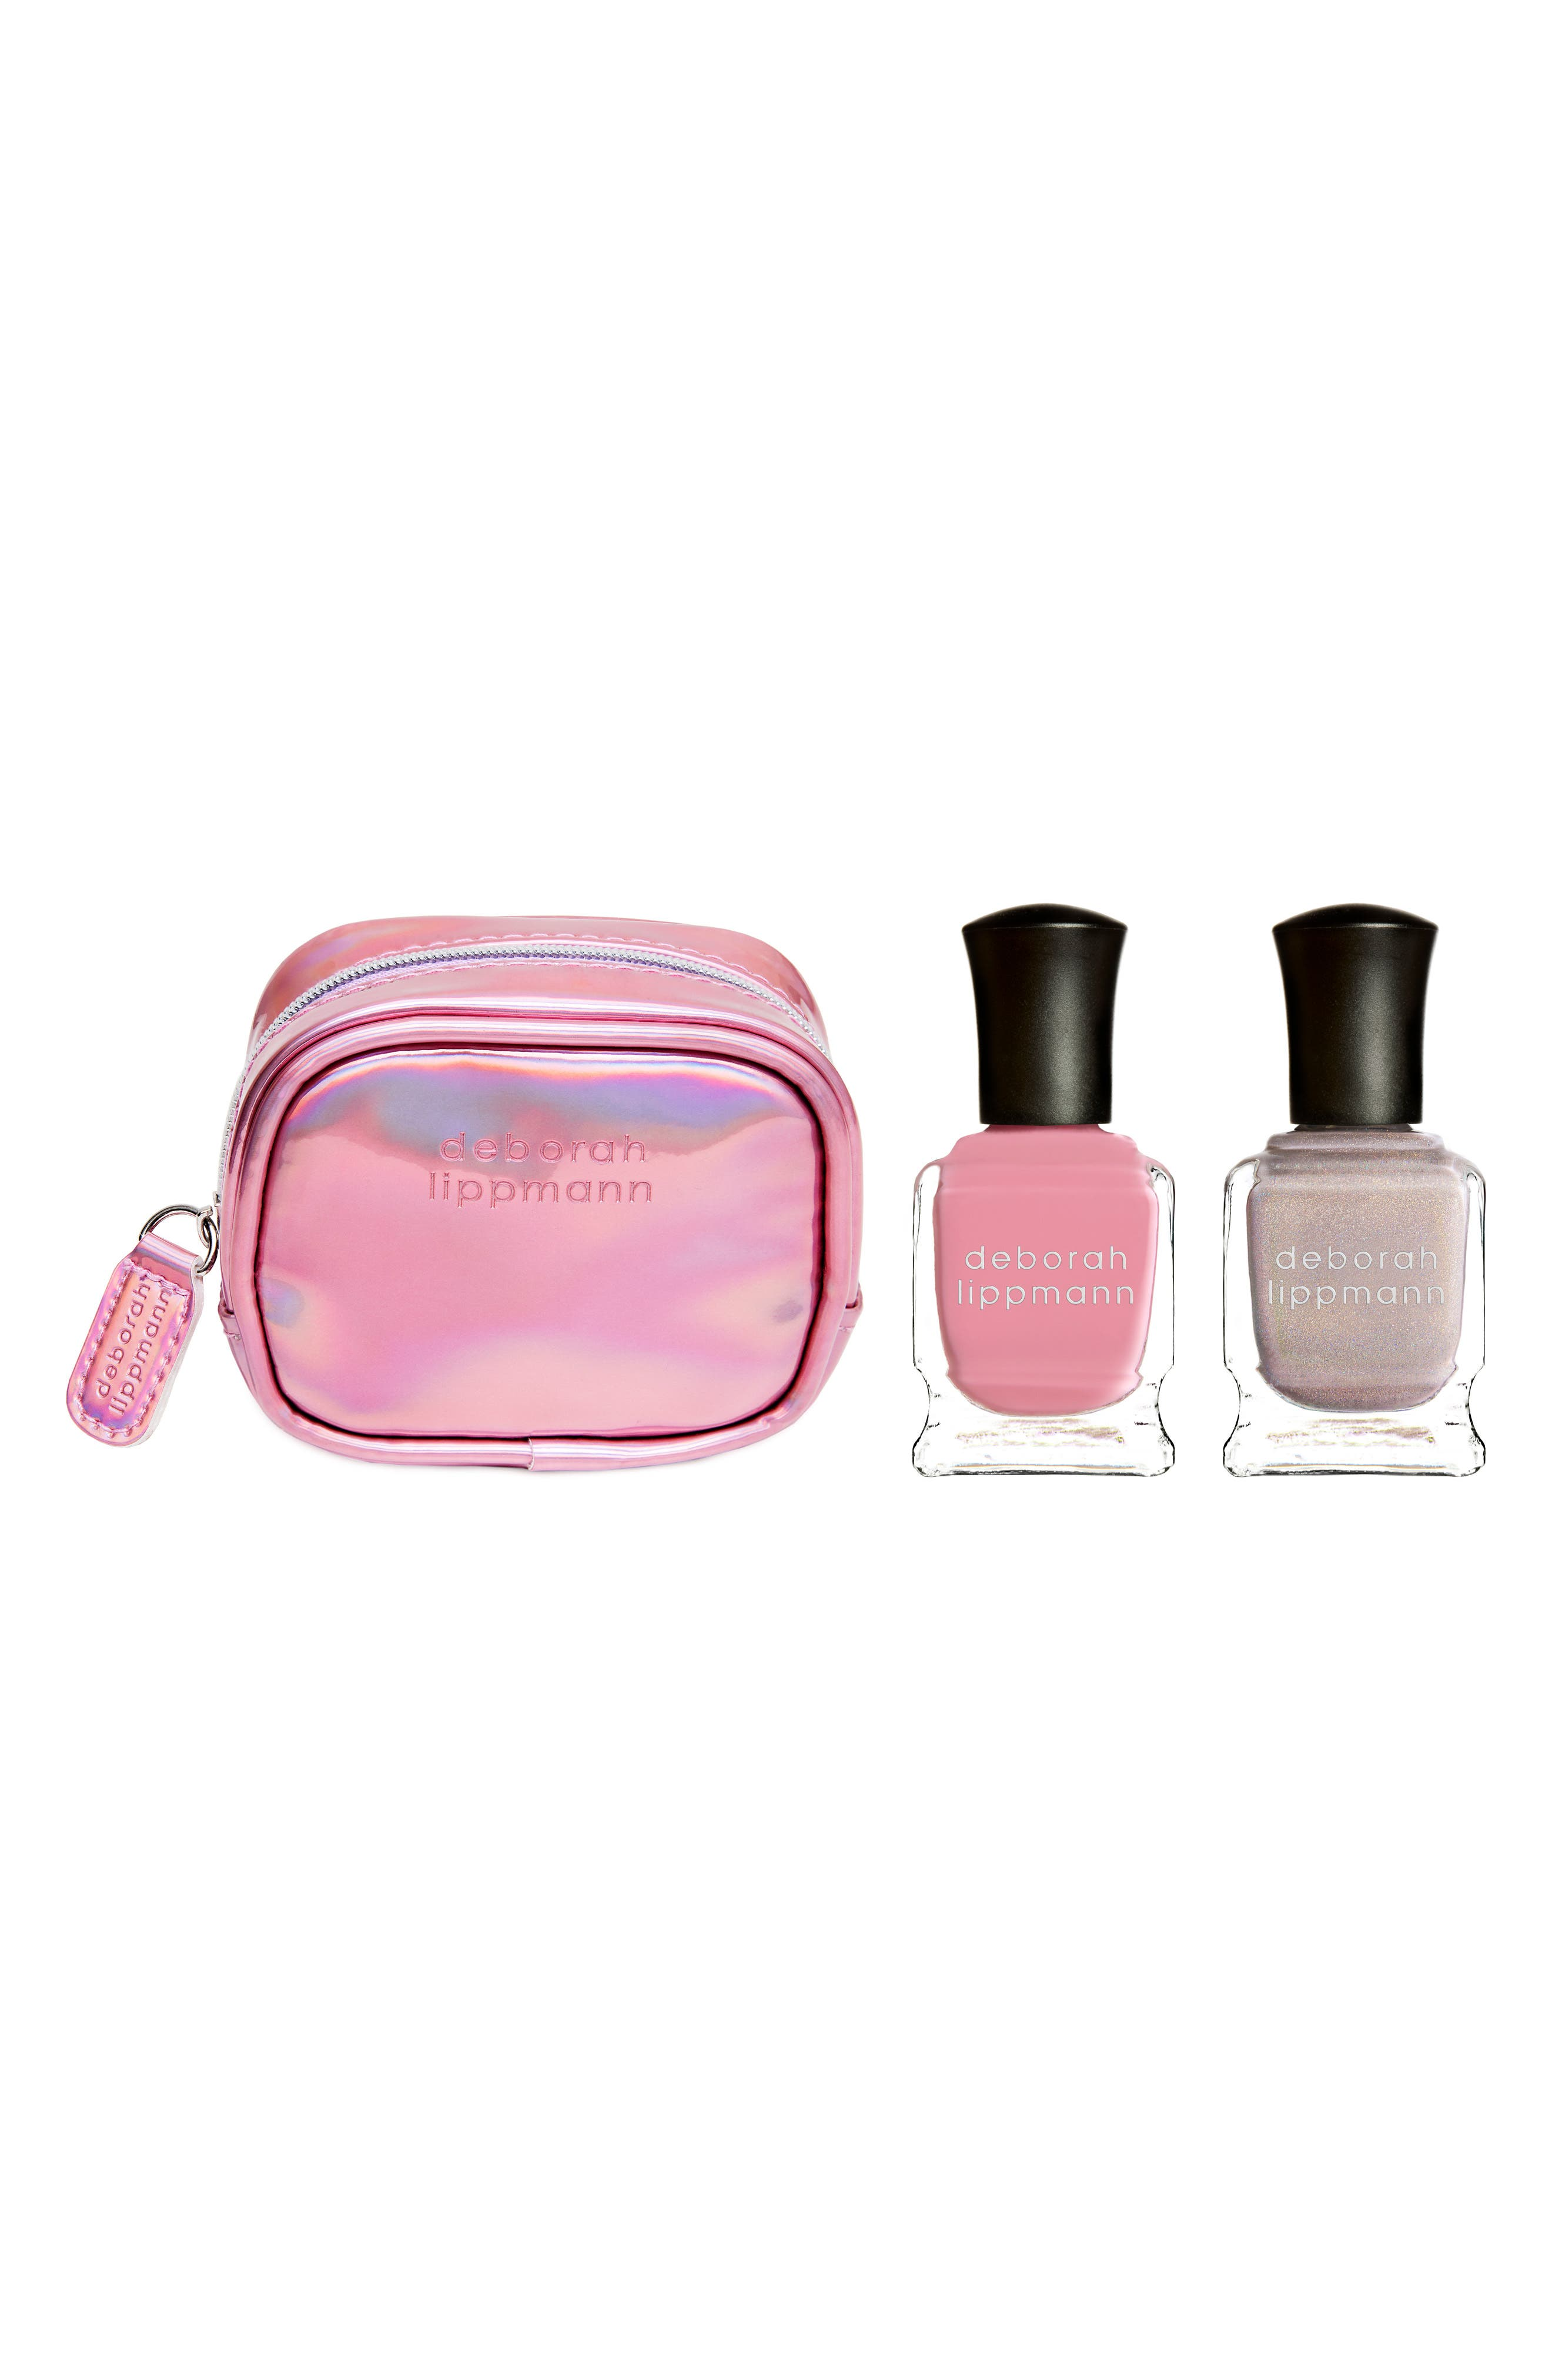 Alternate Image 1 Selected - Deborah Lippmann Hologram Girl Nail Color Duo ($24 Value)